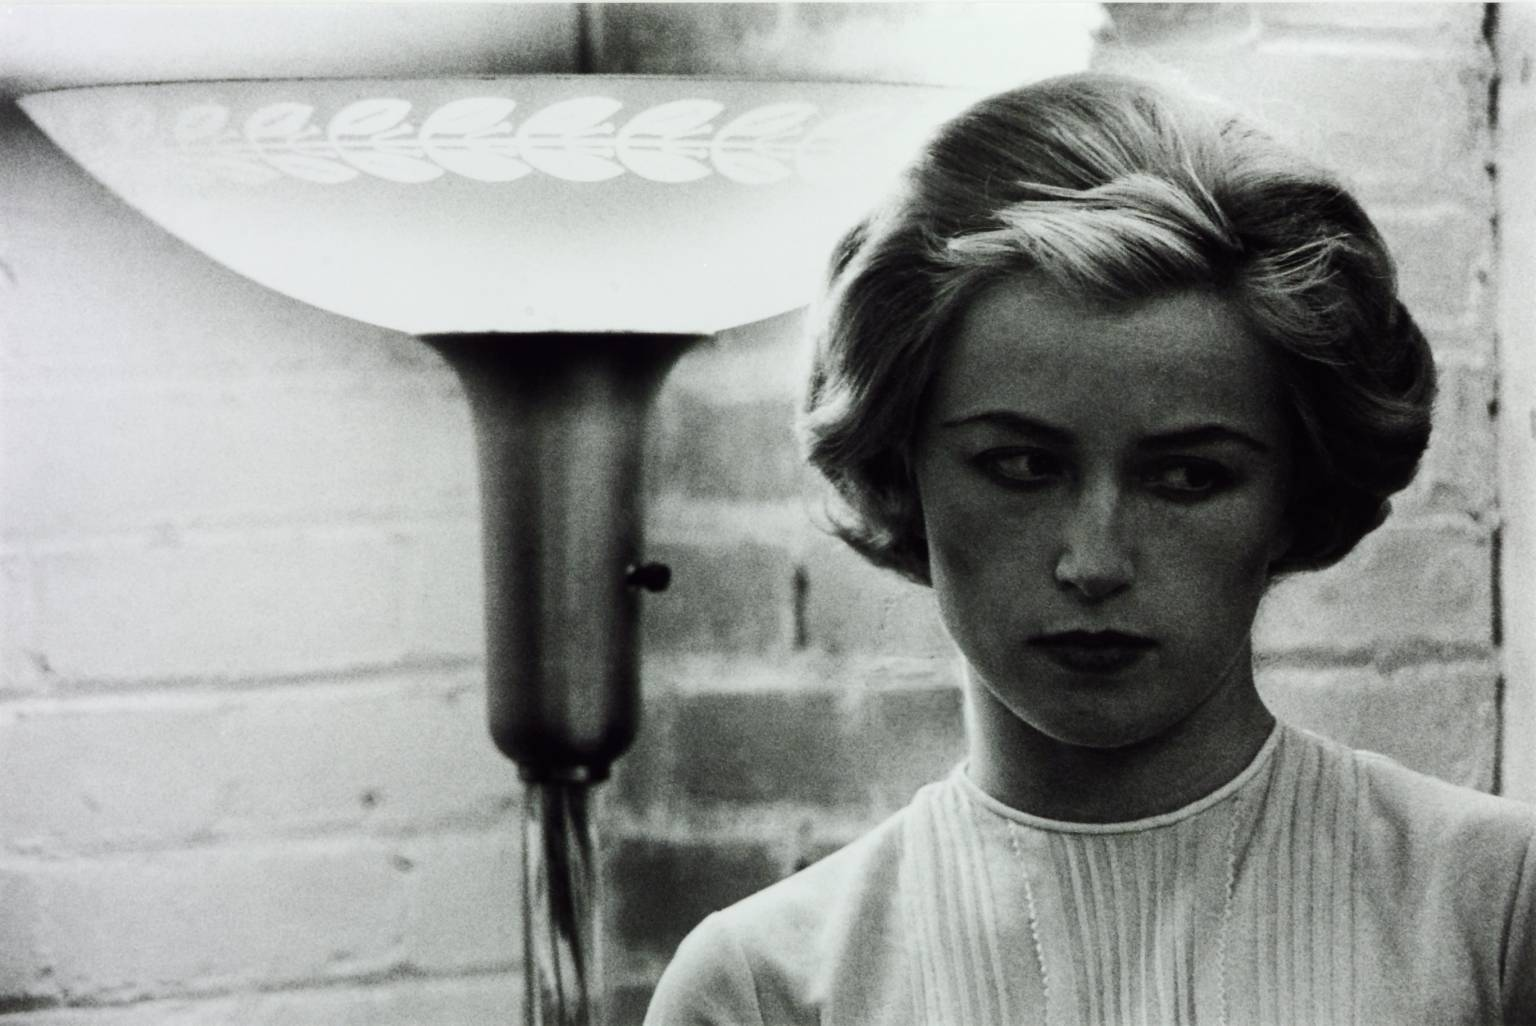 Cindy Sherman, Untitled Film Still #53, 1980, reprinted 1998, © Cindy Sherman